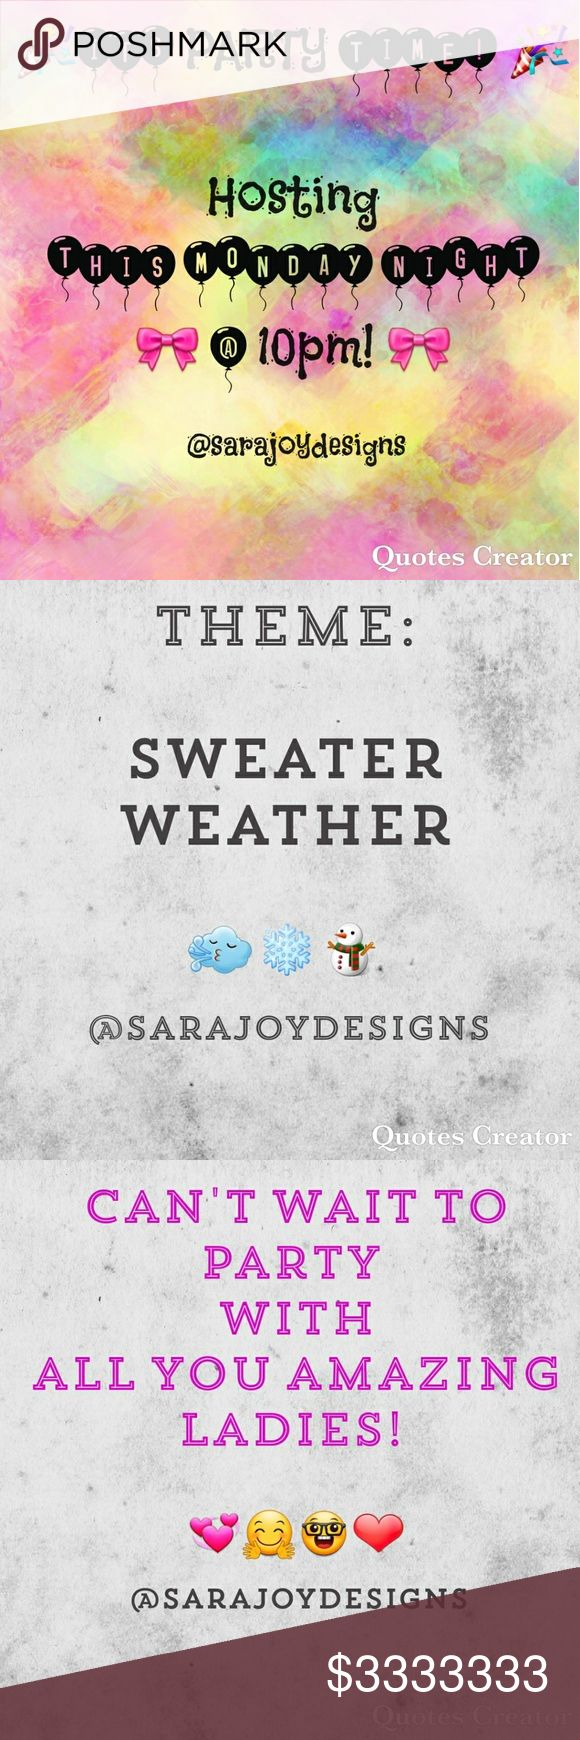 Hosting a Sweater Weather Party Come join me this Monday night at 10:00pm   I can't wait to party with you all! I'm so excited! Please feel free to tag me in some chilly sweater weather items 😁🙂 Other